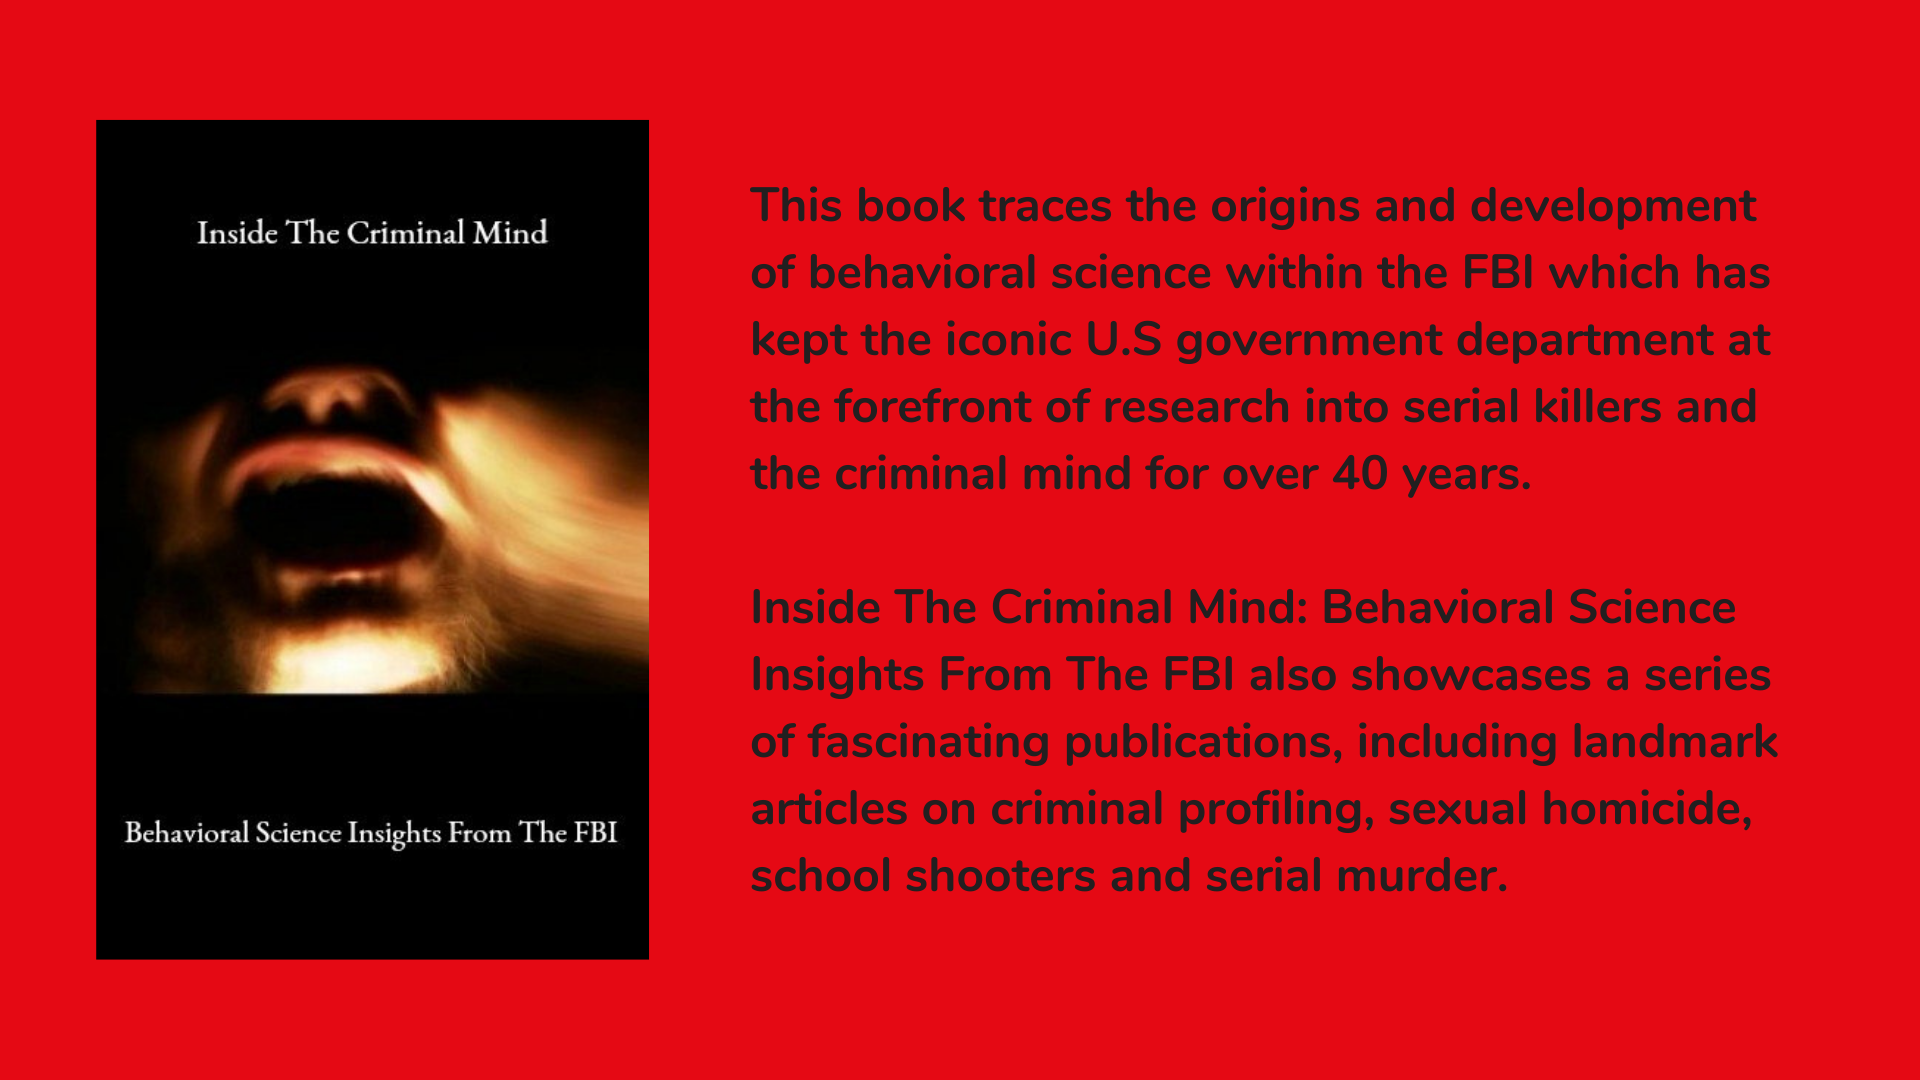 Inside The Criminal Mind: Behavioral Science Insights From The FBI: An Introductory Guide Book Cover and Description.